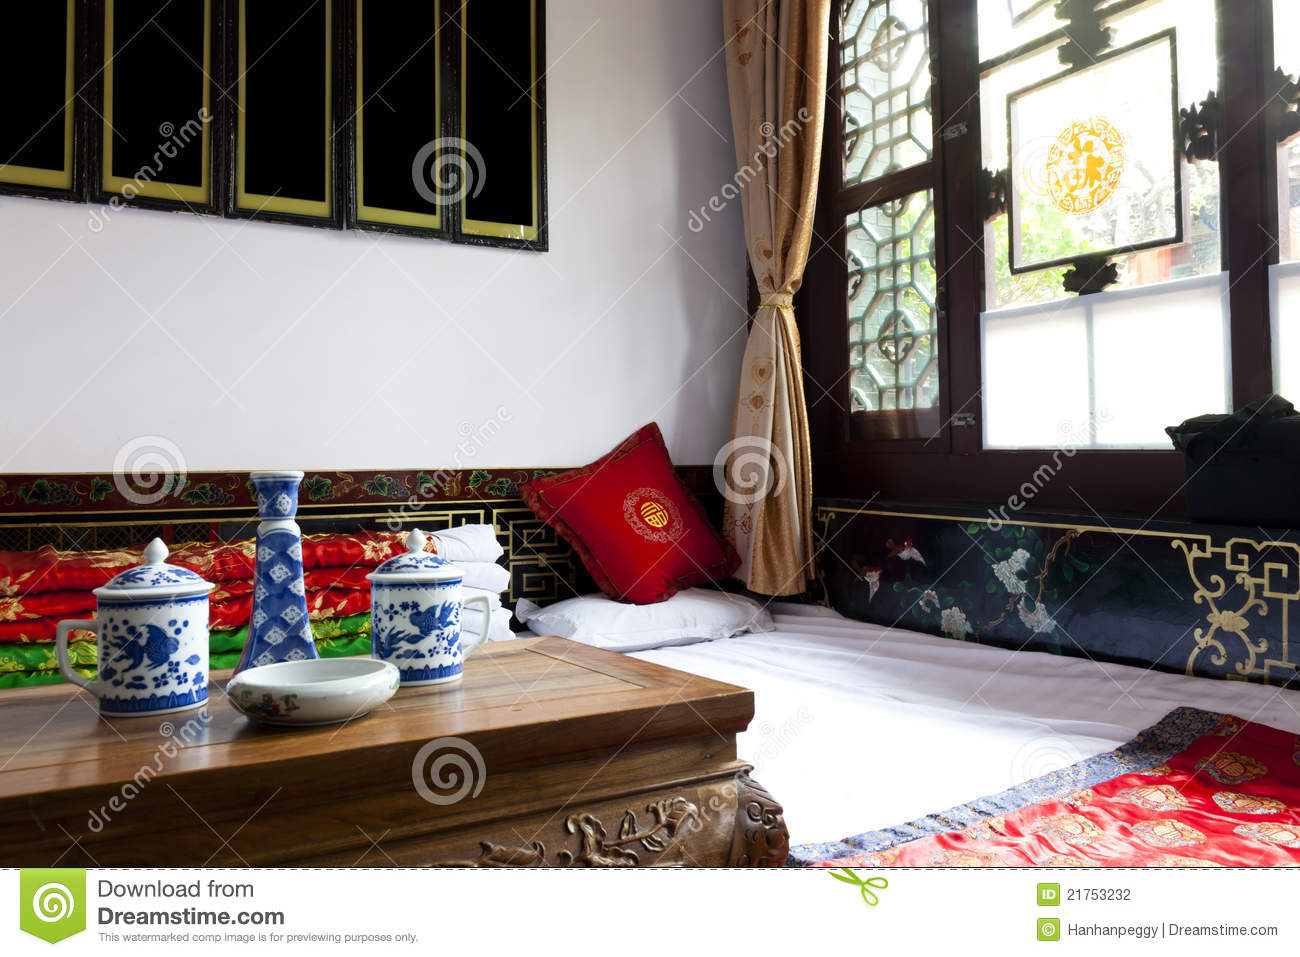 Traditioneel Chinees Bed : Traditionele chinese slaapkamer stock foto afbeelding bestaande